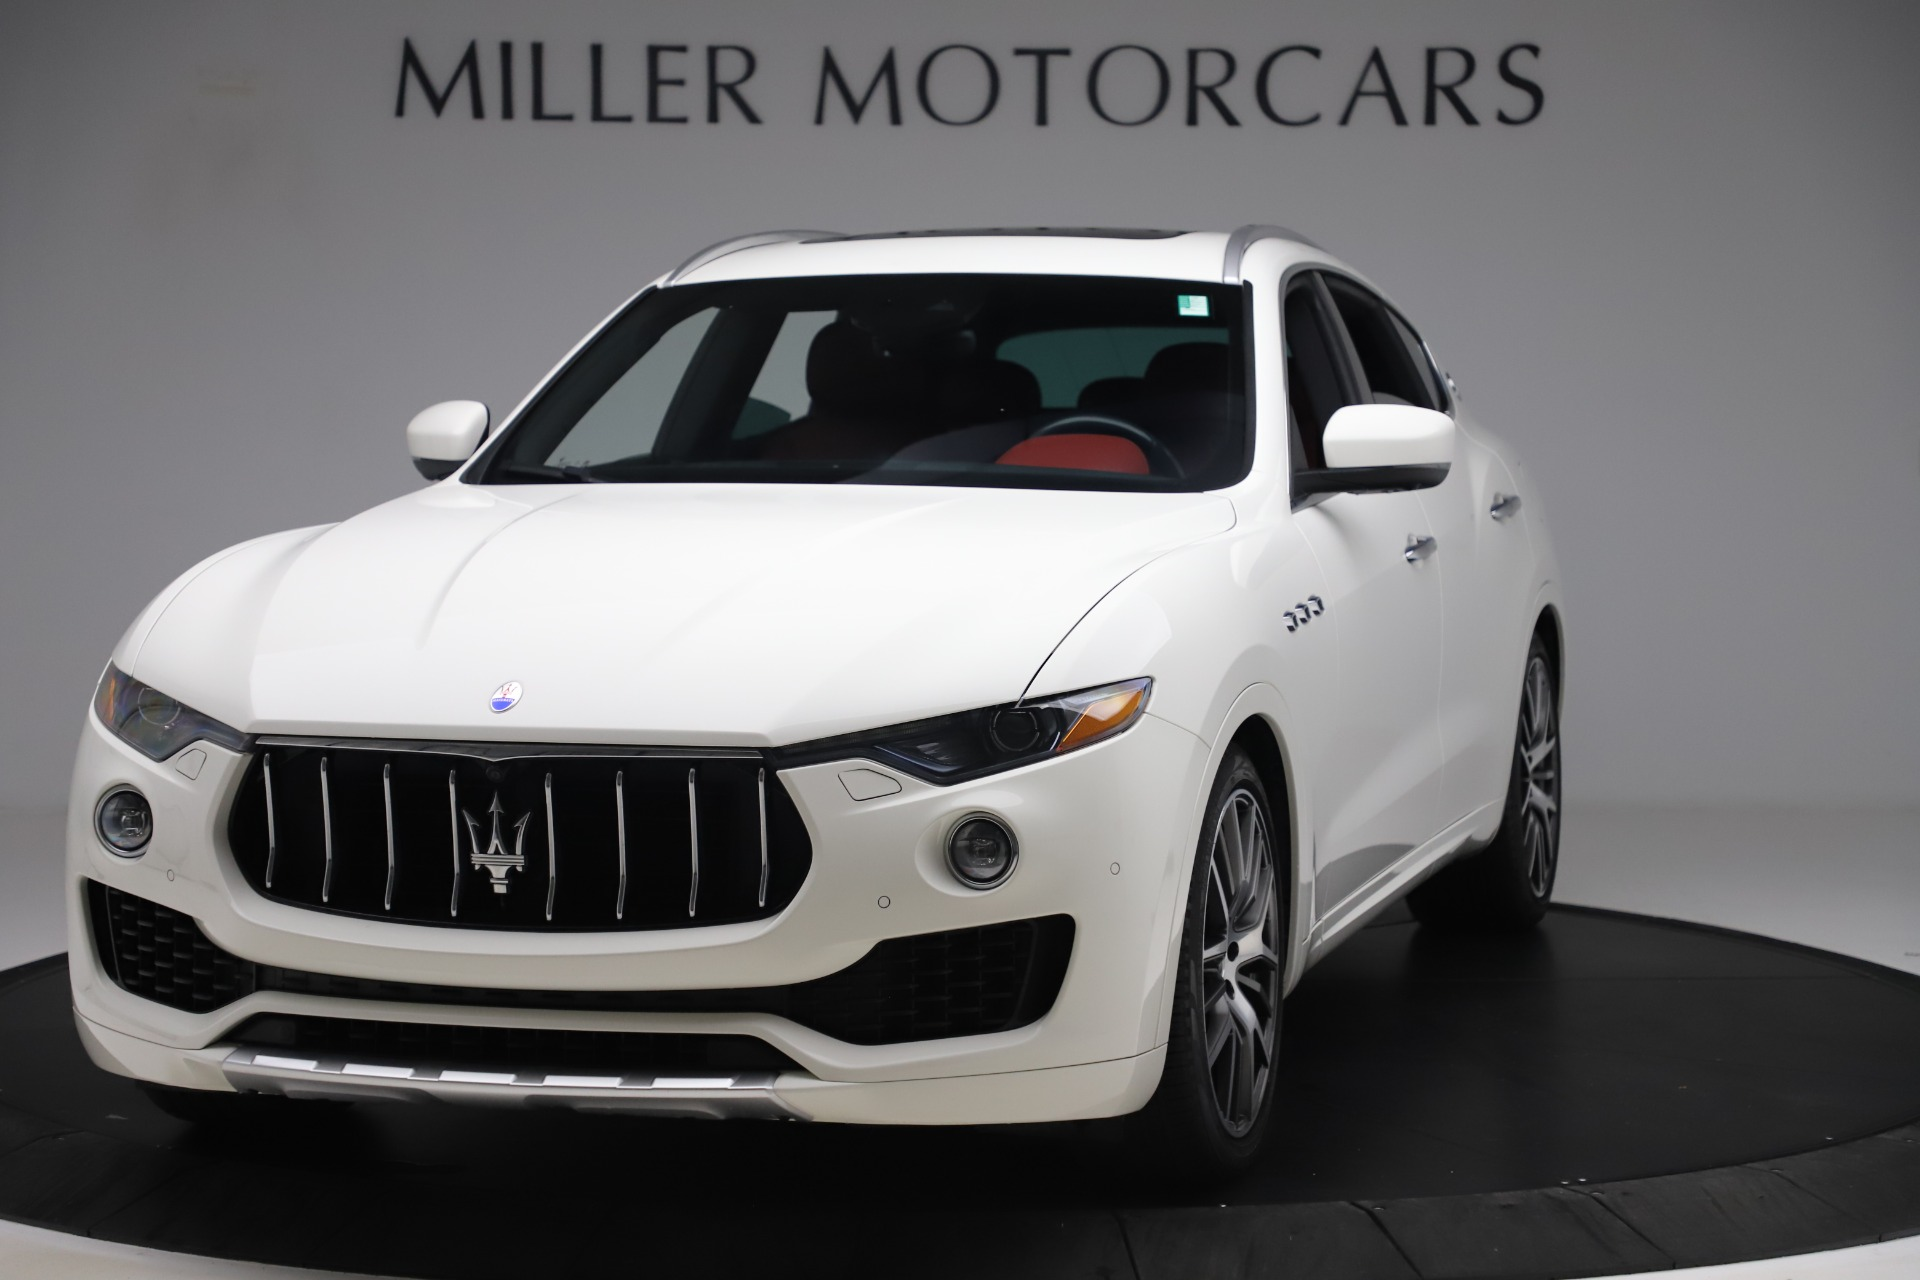 Used 2017 Maserati Levante S for sale Sold at Pagani of Greenwich in Greenwich CT 06830 1